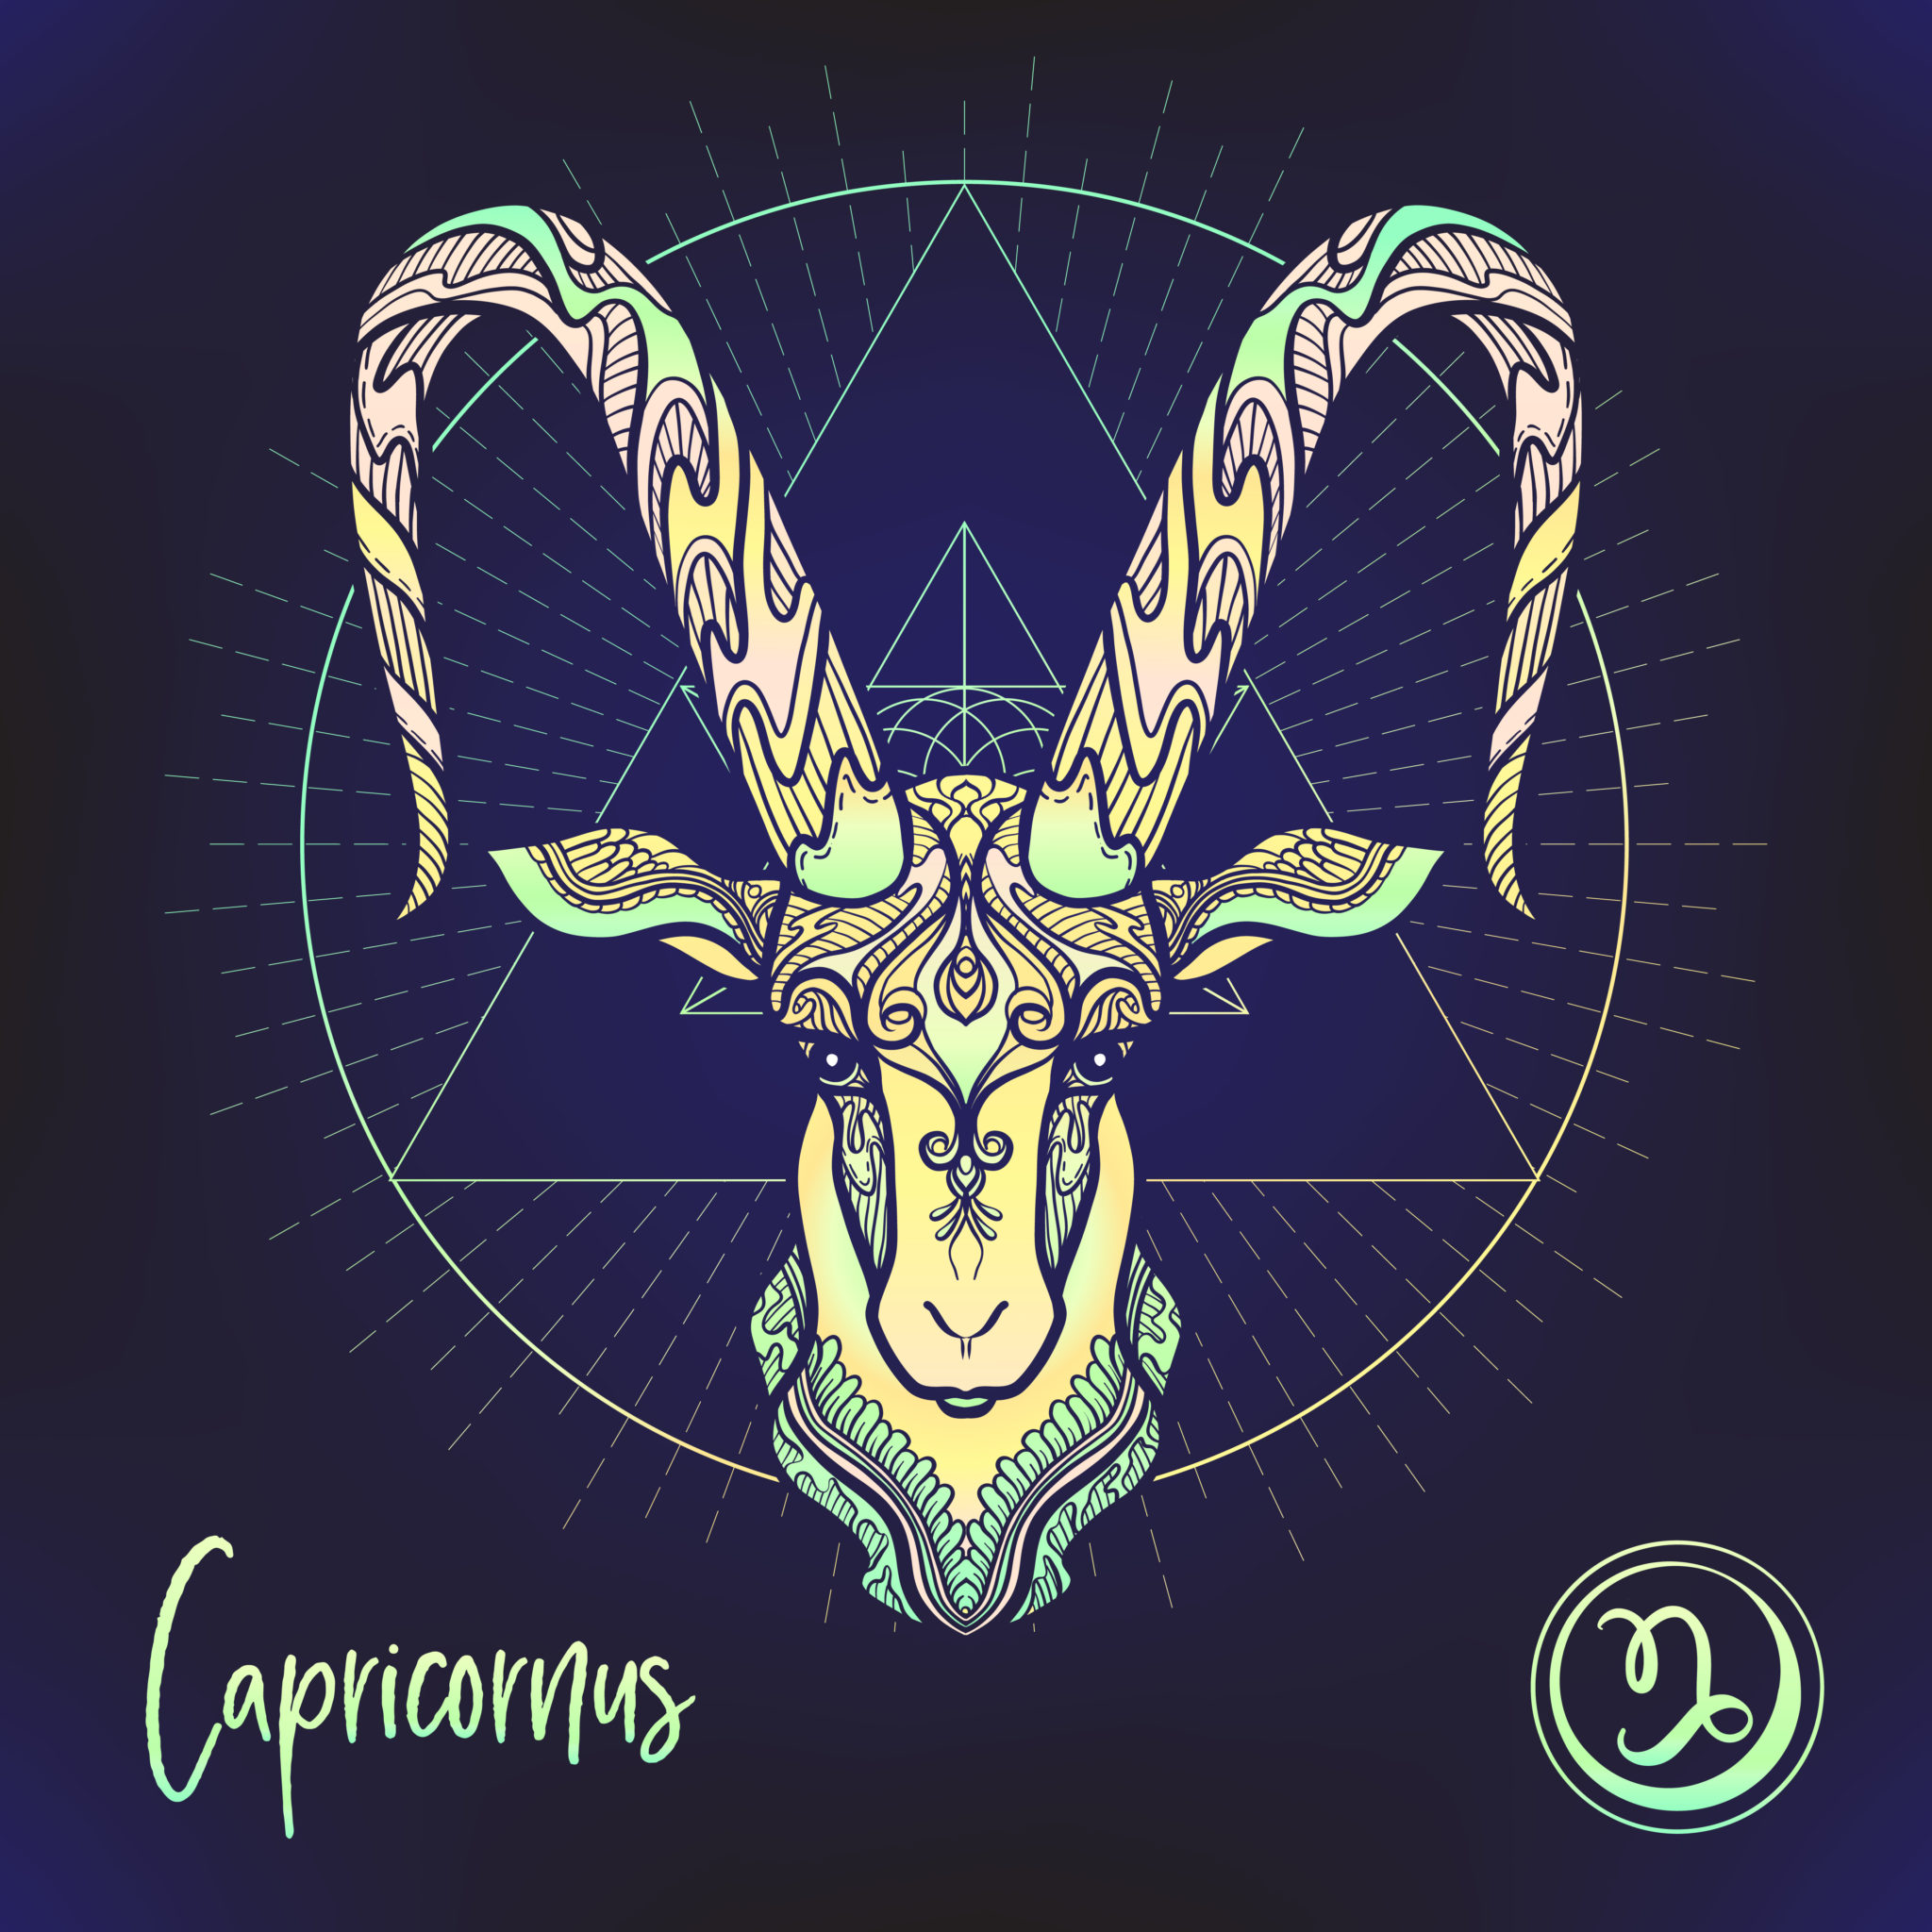 10 Reasons Capricorn is the Worst Zodiac Sign